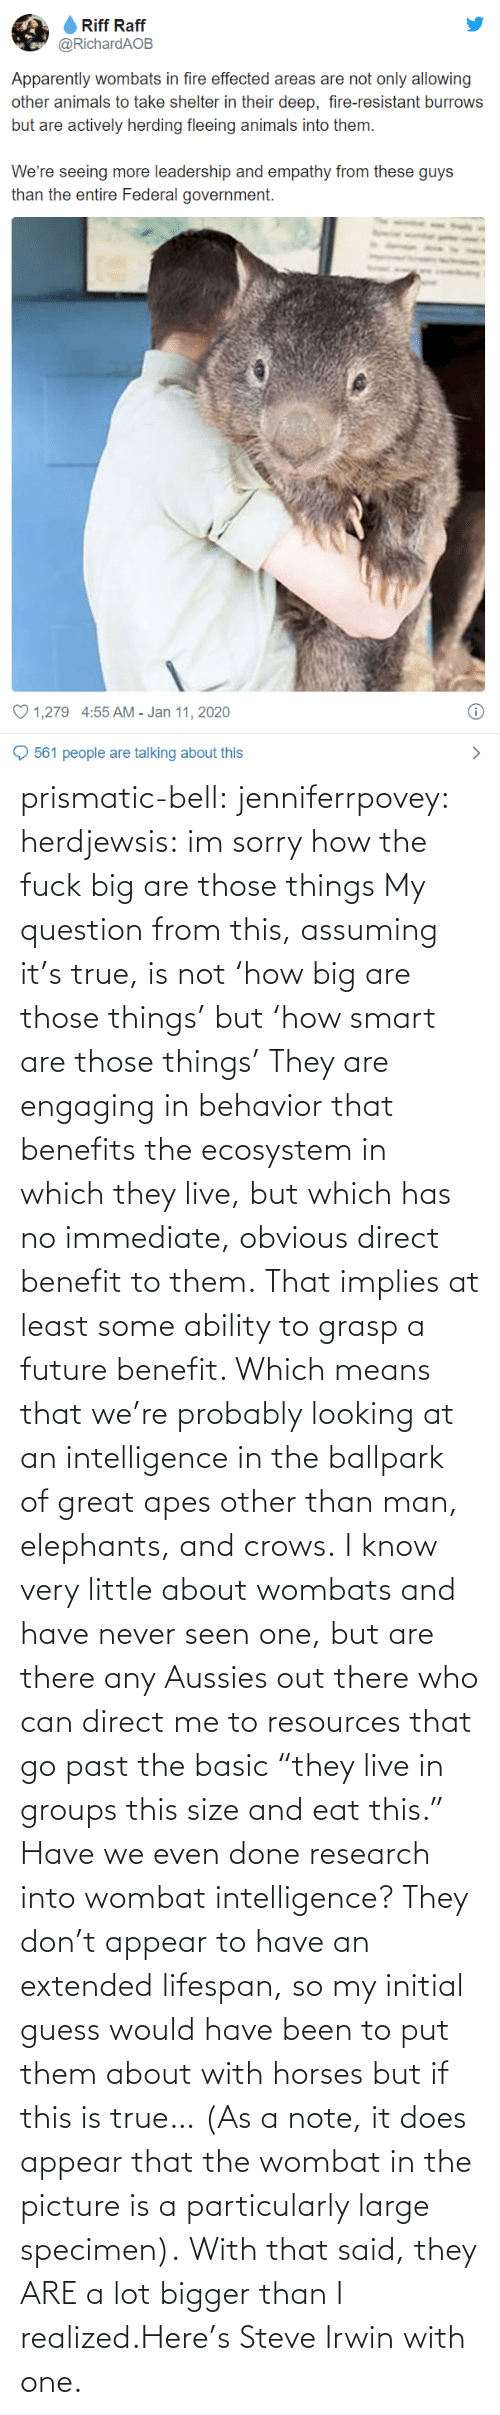 "Guess: prismatic-bell:  jenniferrpovey: herdjewsis: im sorry how the fuck big are those things My question from this, assuming it's true, is not 'how big are those things' but 'how smart are those things' They are engaging in behavior that benefits the ecosystem in which they live, but which has no immediate, obvious direct benefit to them. That implies at least some ability to grasp a future benefit. Which means that we're probably looking at an intelligence in the ballpark of great apes other than man, elephants, and crows. I know very little about wombats and have never seen one, but are there any Aussies out there who can direct me to resources that go past the basic ""they live in groups this size and eat this."" Have we even done research into wombat intelligence? They don't appear to have an extended lifespan, so my initial guess would have been to put them about with horses but if this is true… (As a note, it does appear that the wombat in the picture is a particularly large specimen).  With that said, they ARE a lot bigger than I realized.Here's Steve Irwin with one."